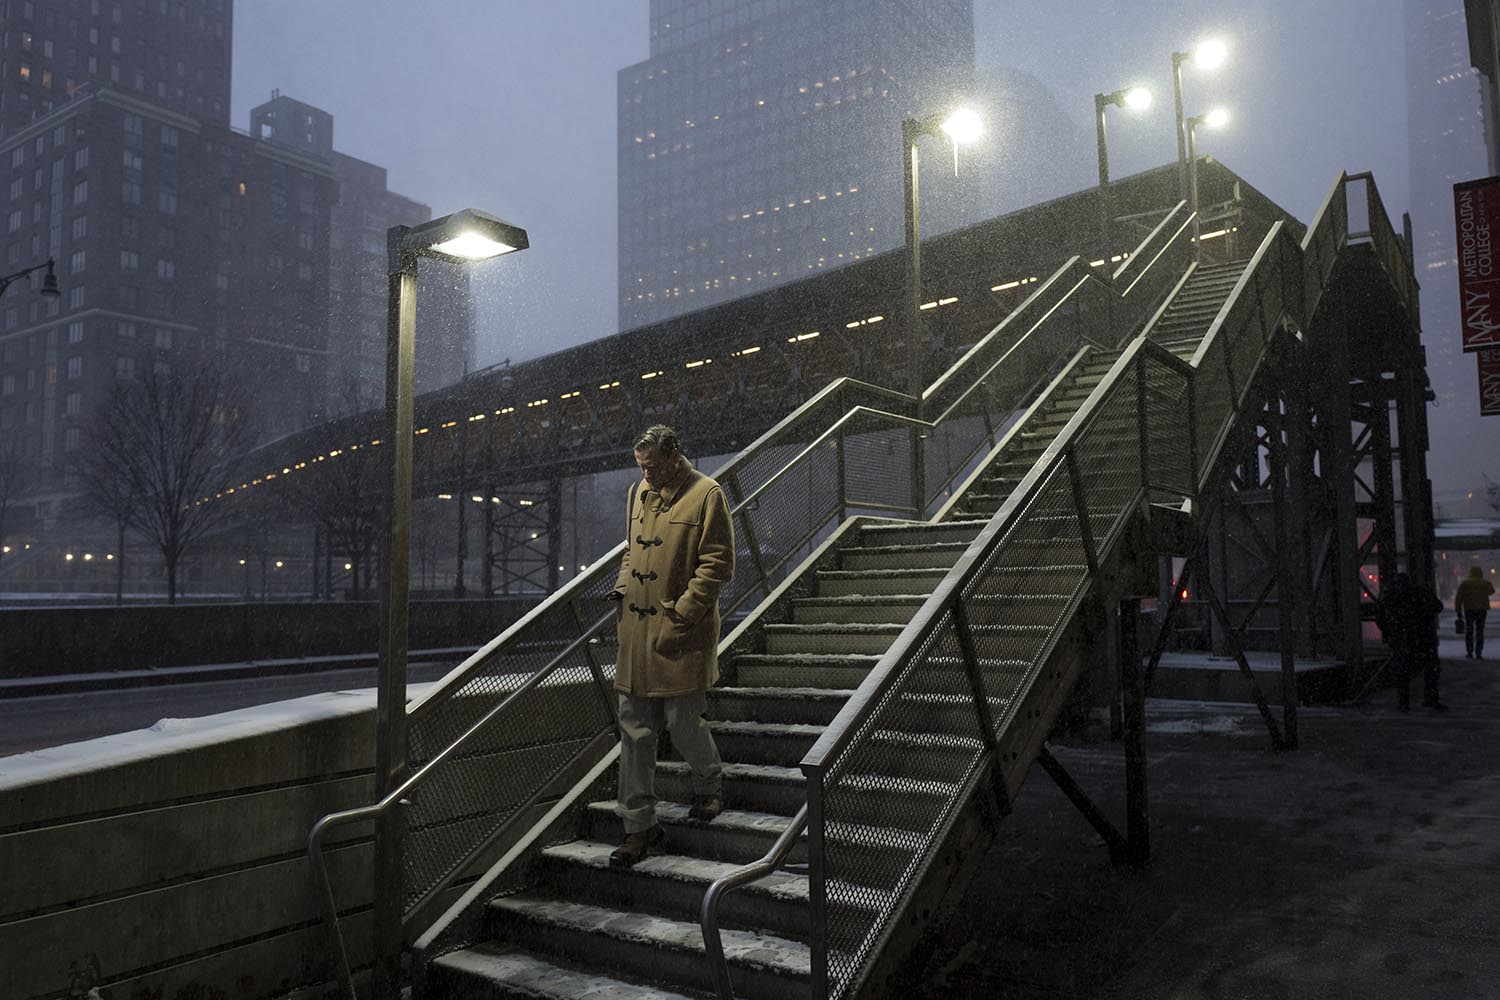 <div class='meta'><div class='origin-logo' data-origin='AP'></div><span class='caption-text' data-credit='AP Photo/Mark Lennihan'>A man walks down a staircase through an early morning snowfall, Thursday, Jan. 4, 2018, in New York.</span></div>